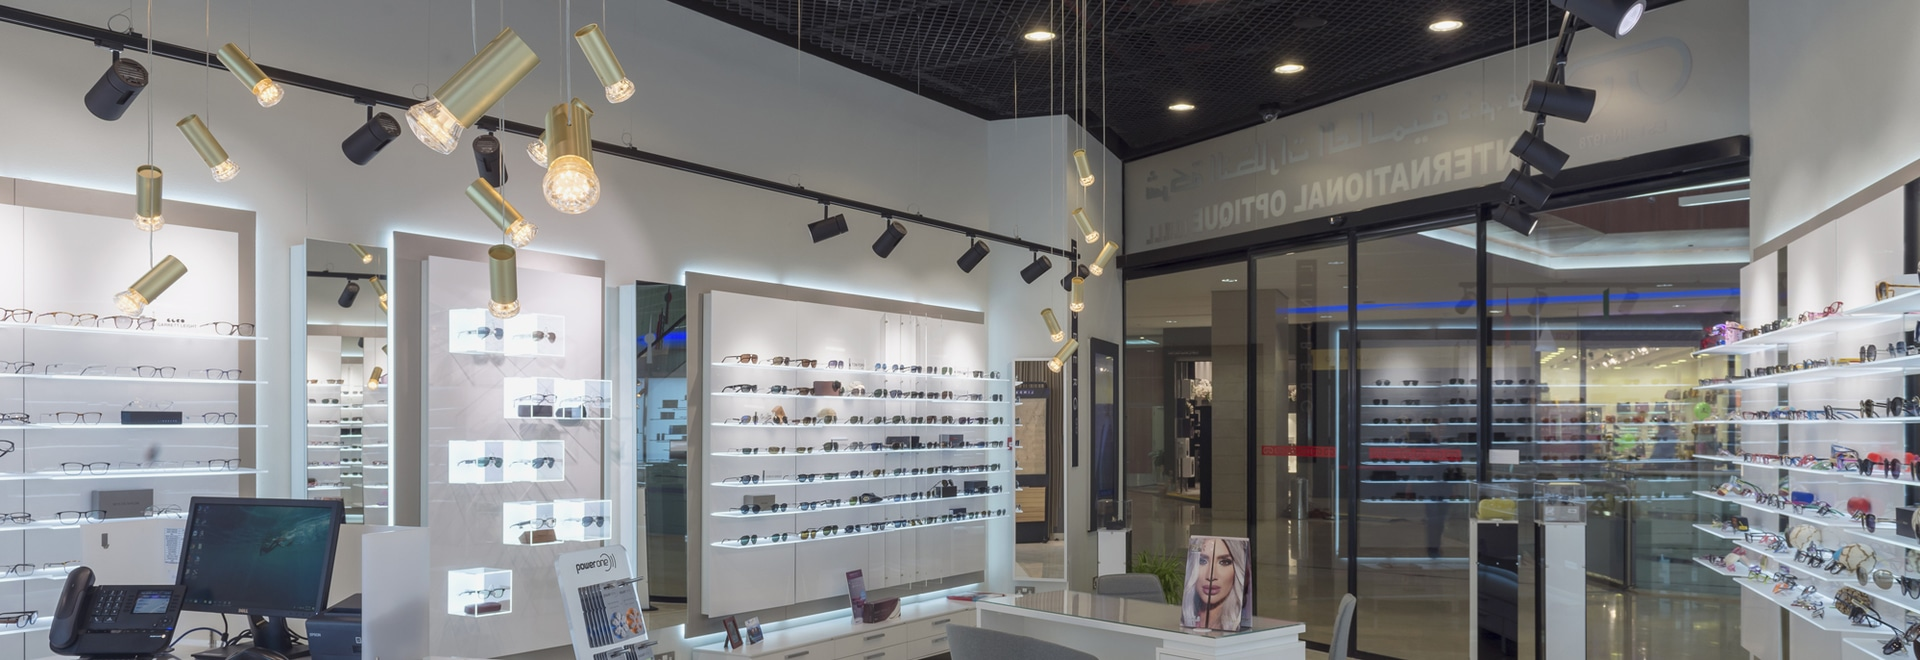 Gold Jewels at International Optique in Kuwait by Concept S